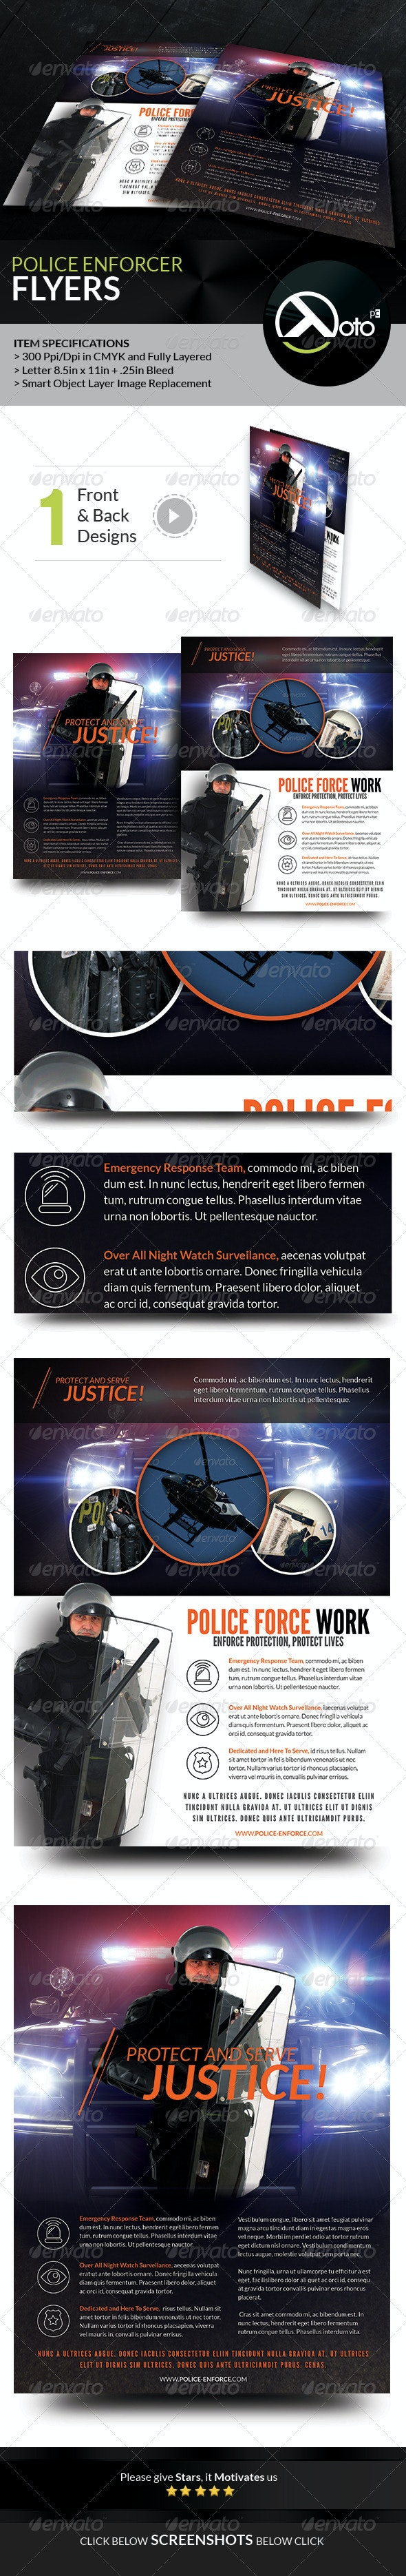 Police Enforcer Protect and Serve Flyers - Flyers Print Templates